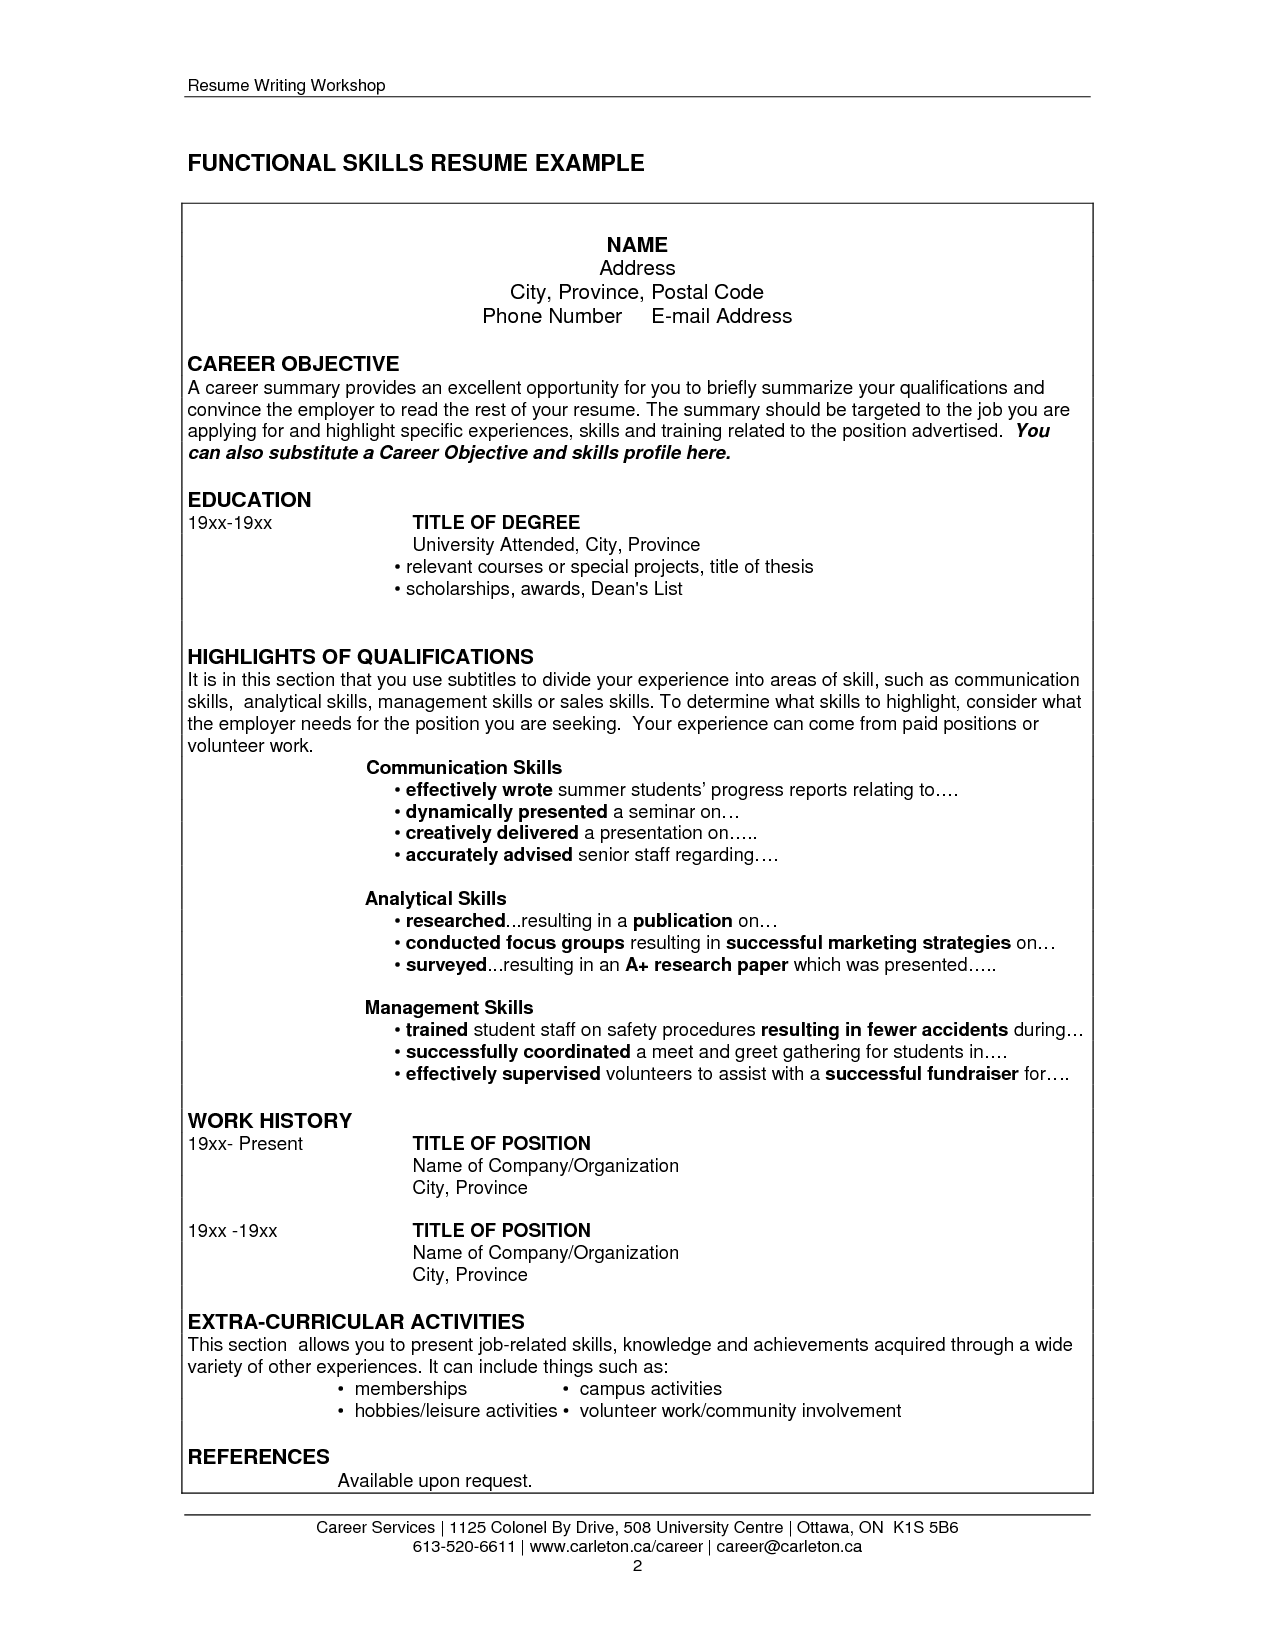 Image Result For Skills Resume Format  Skills And Abilities On Resume